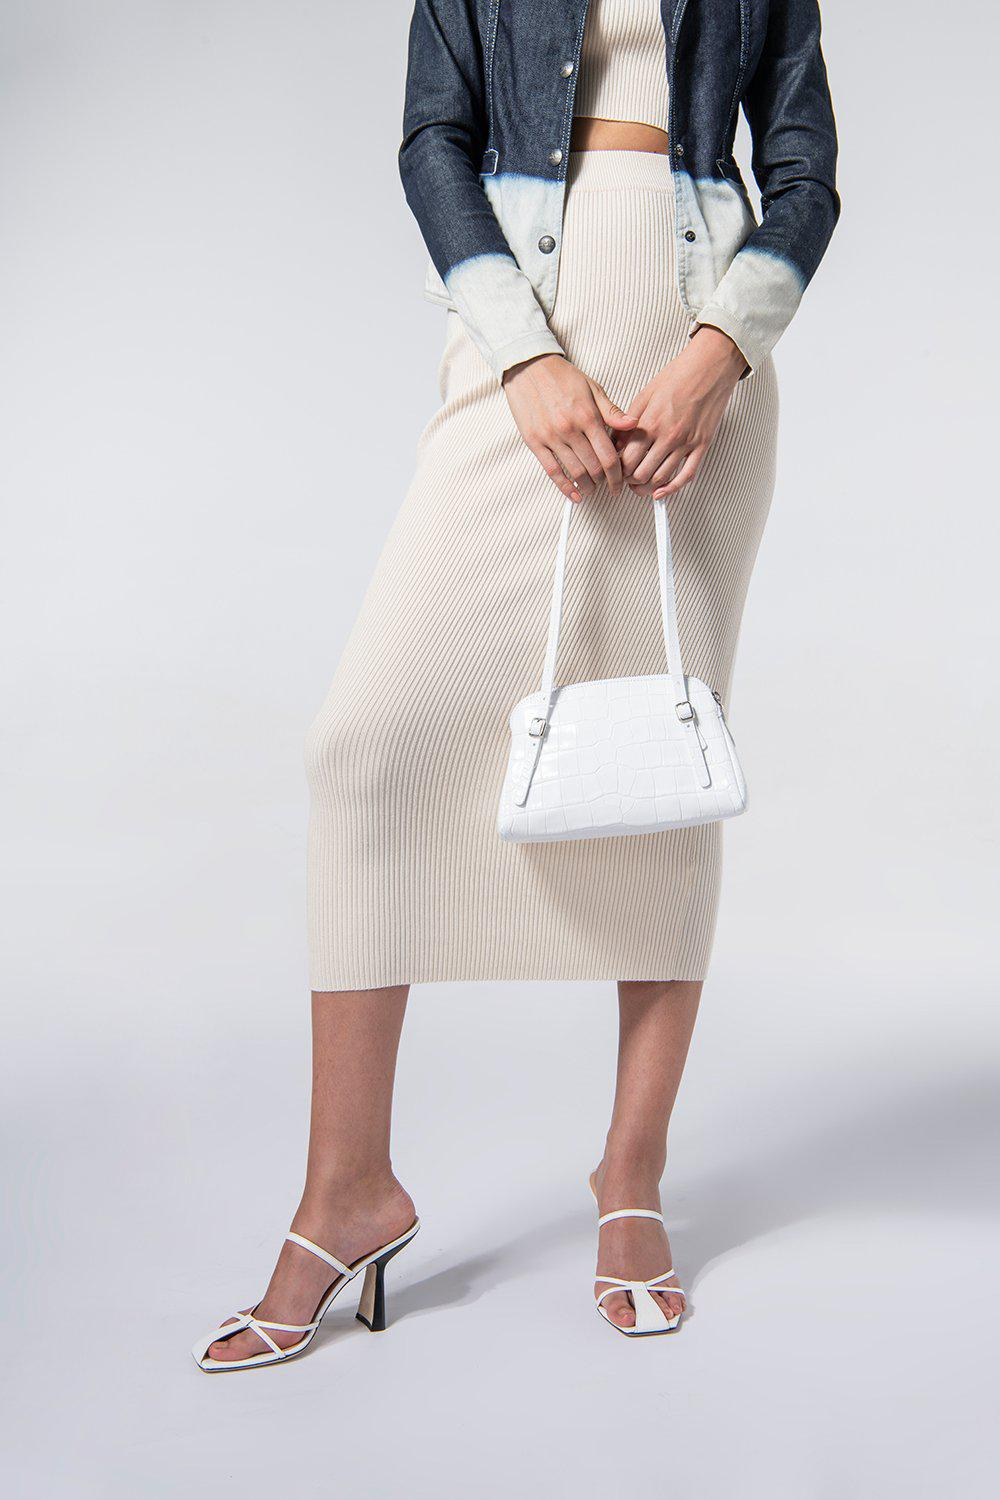 Lora White Croco Embossed Leather 4